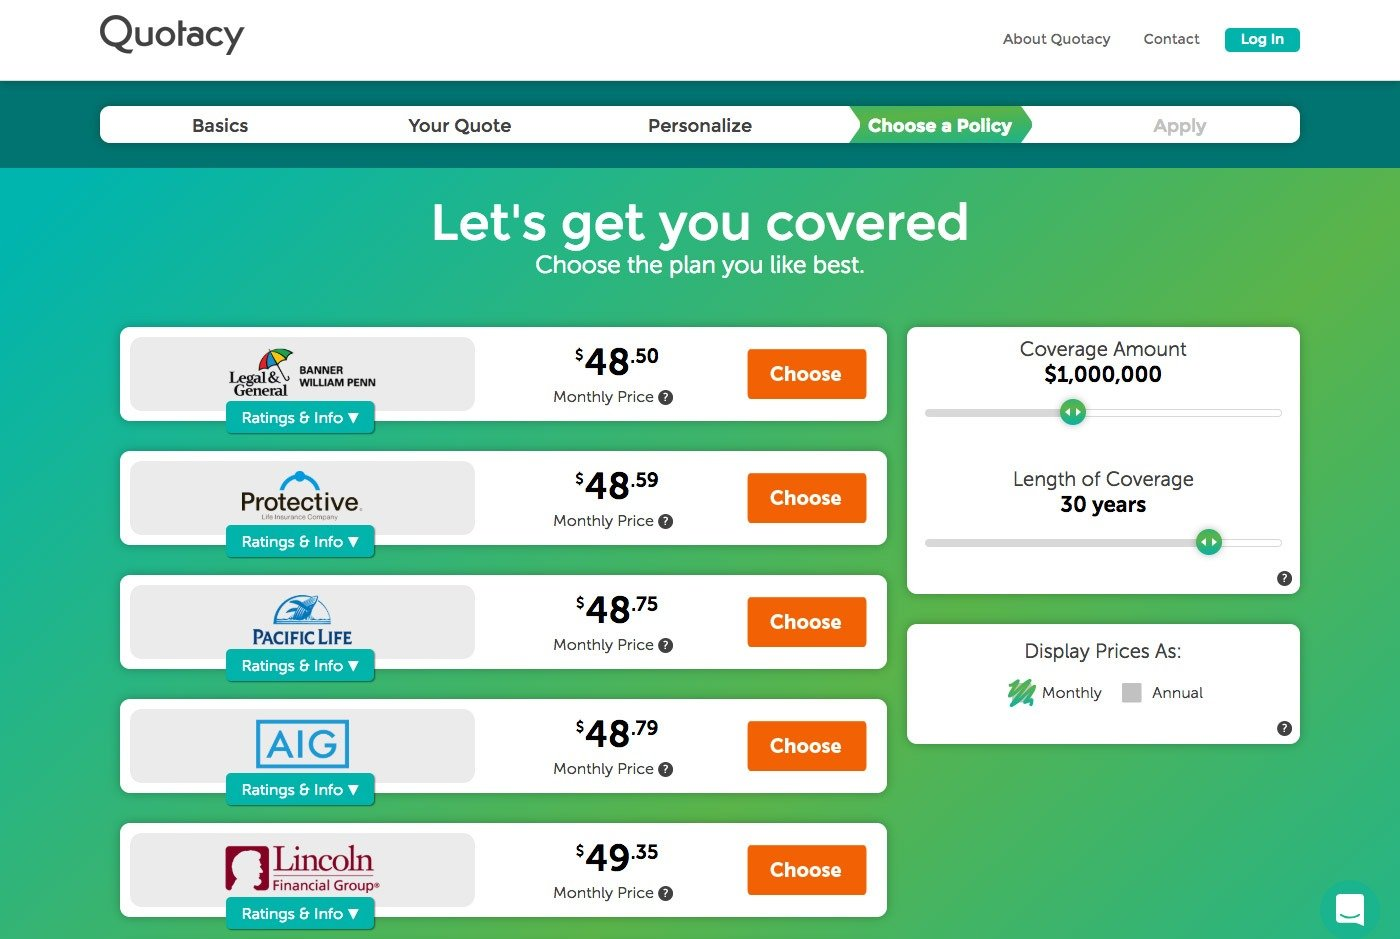 Quotacy quoting tool showing 1,000,000 dollars in term coverage options